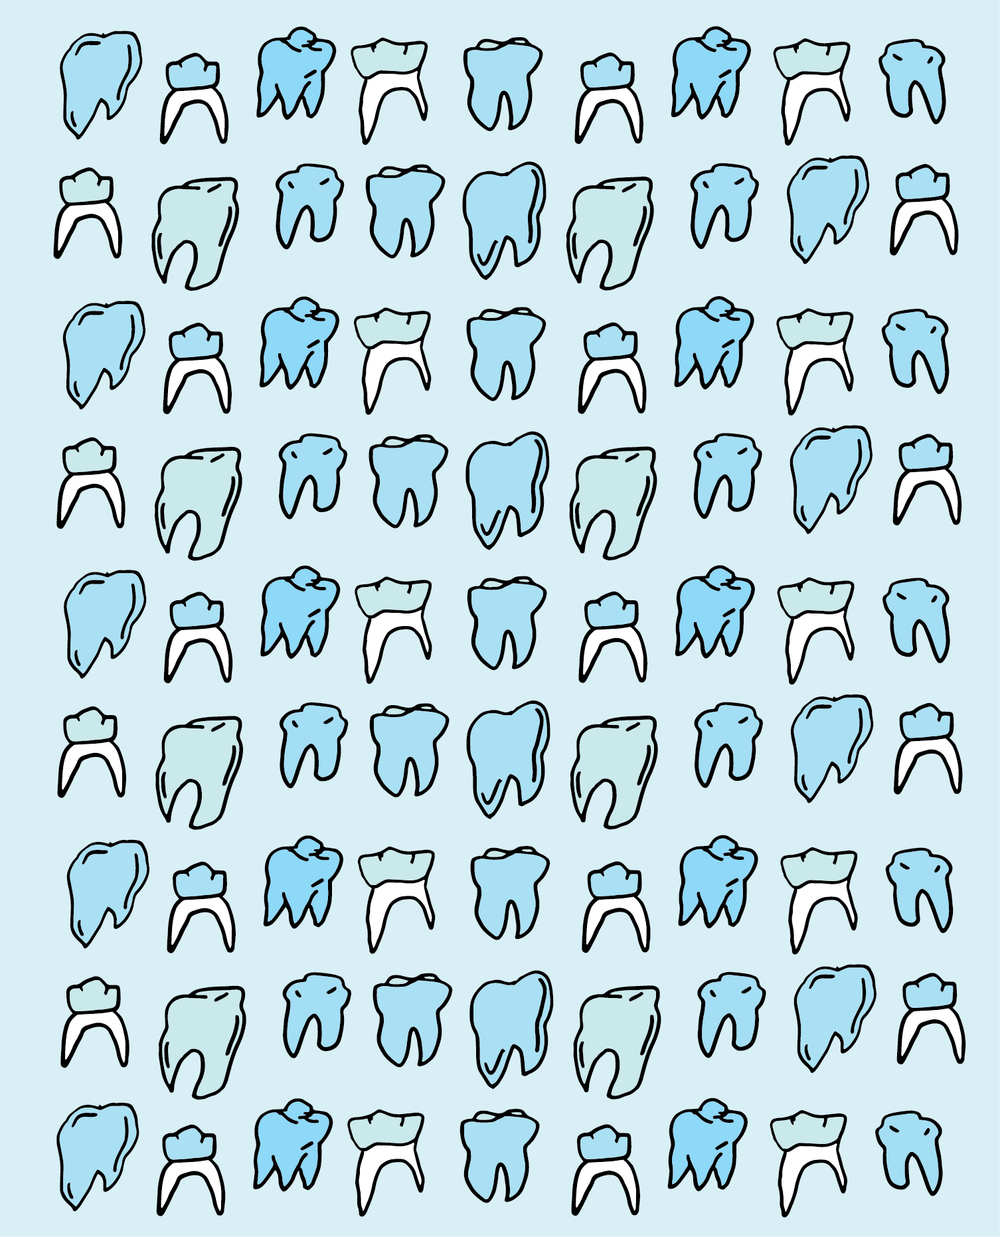 patterns-04.png